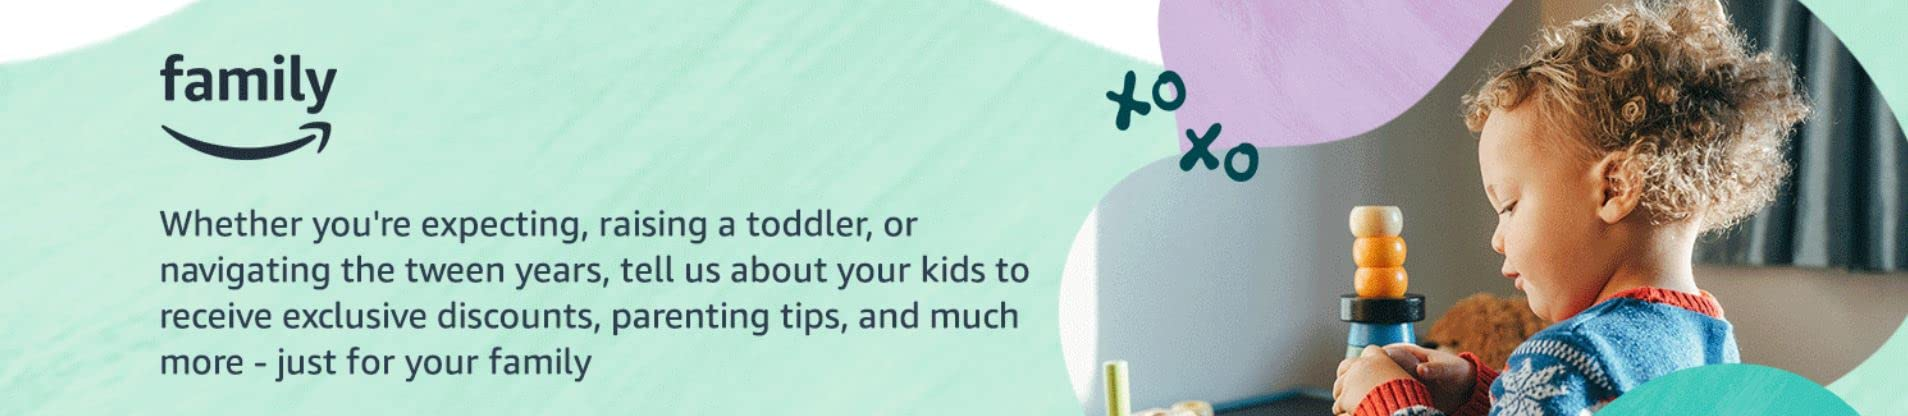 Amazon Family - tell us about your kids to receive age-based recommendations